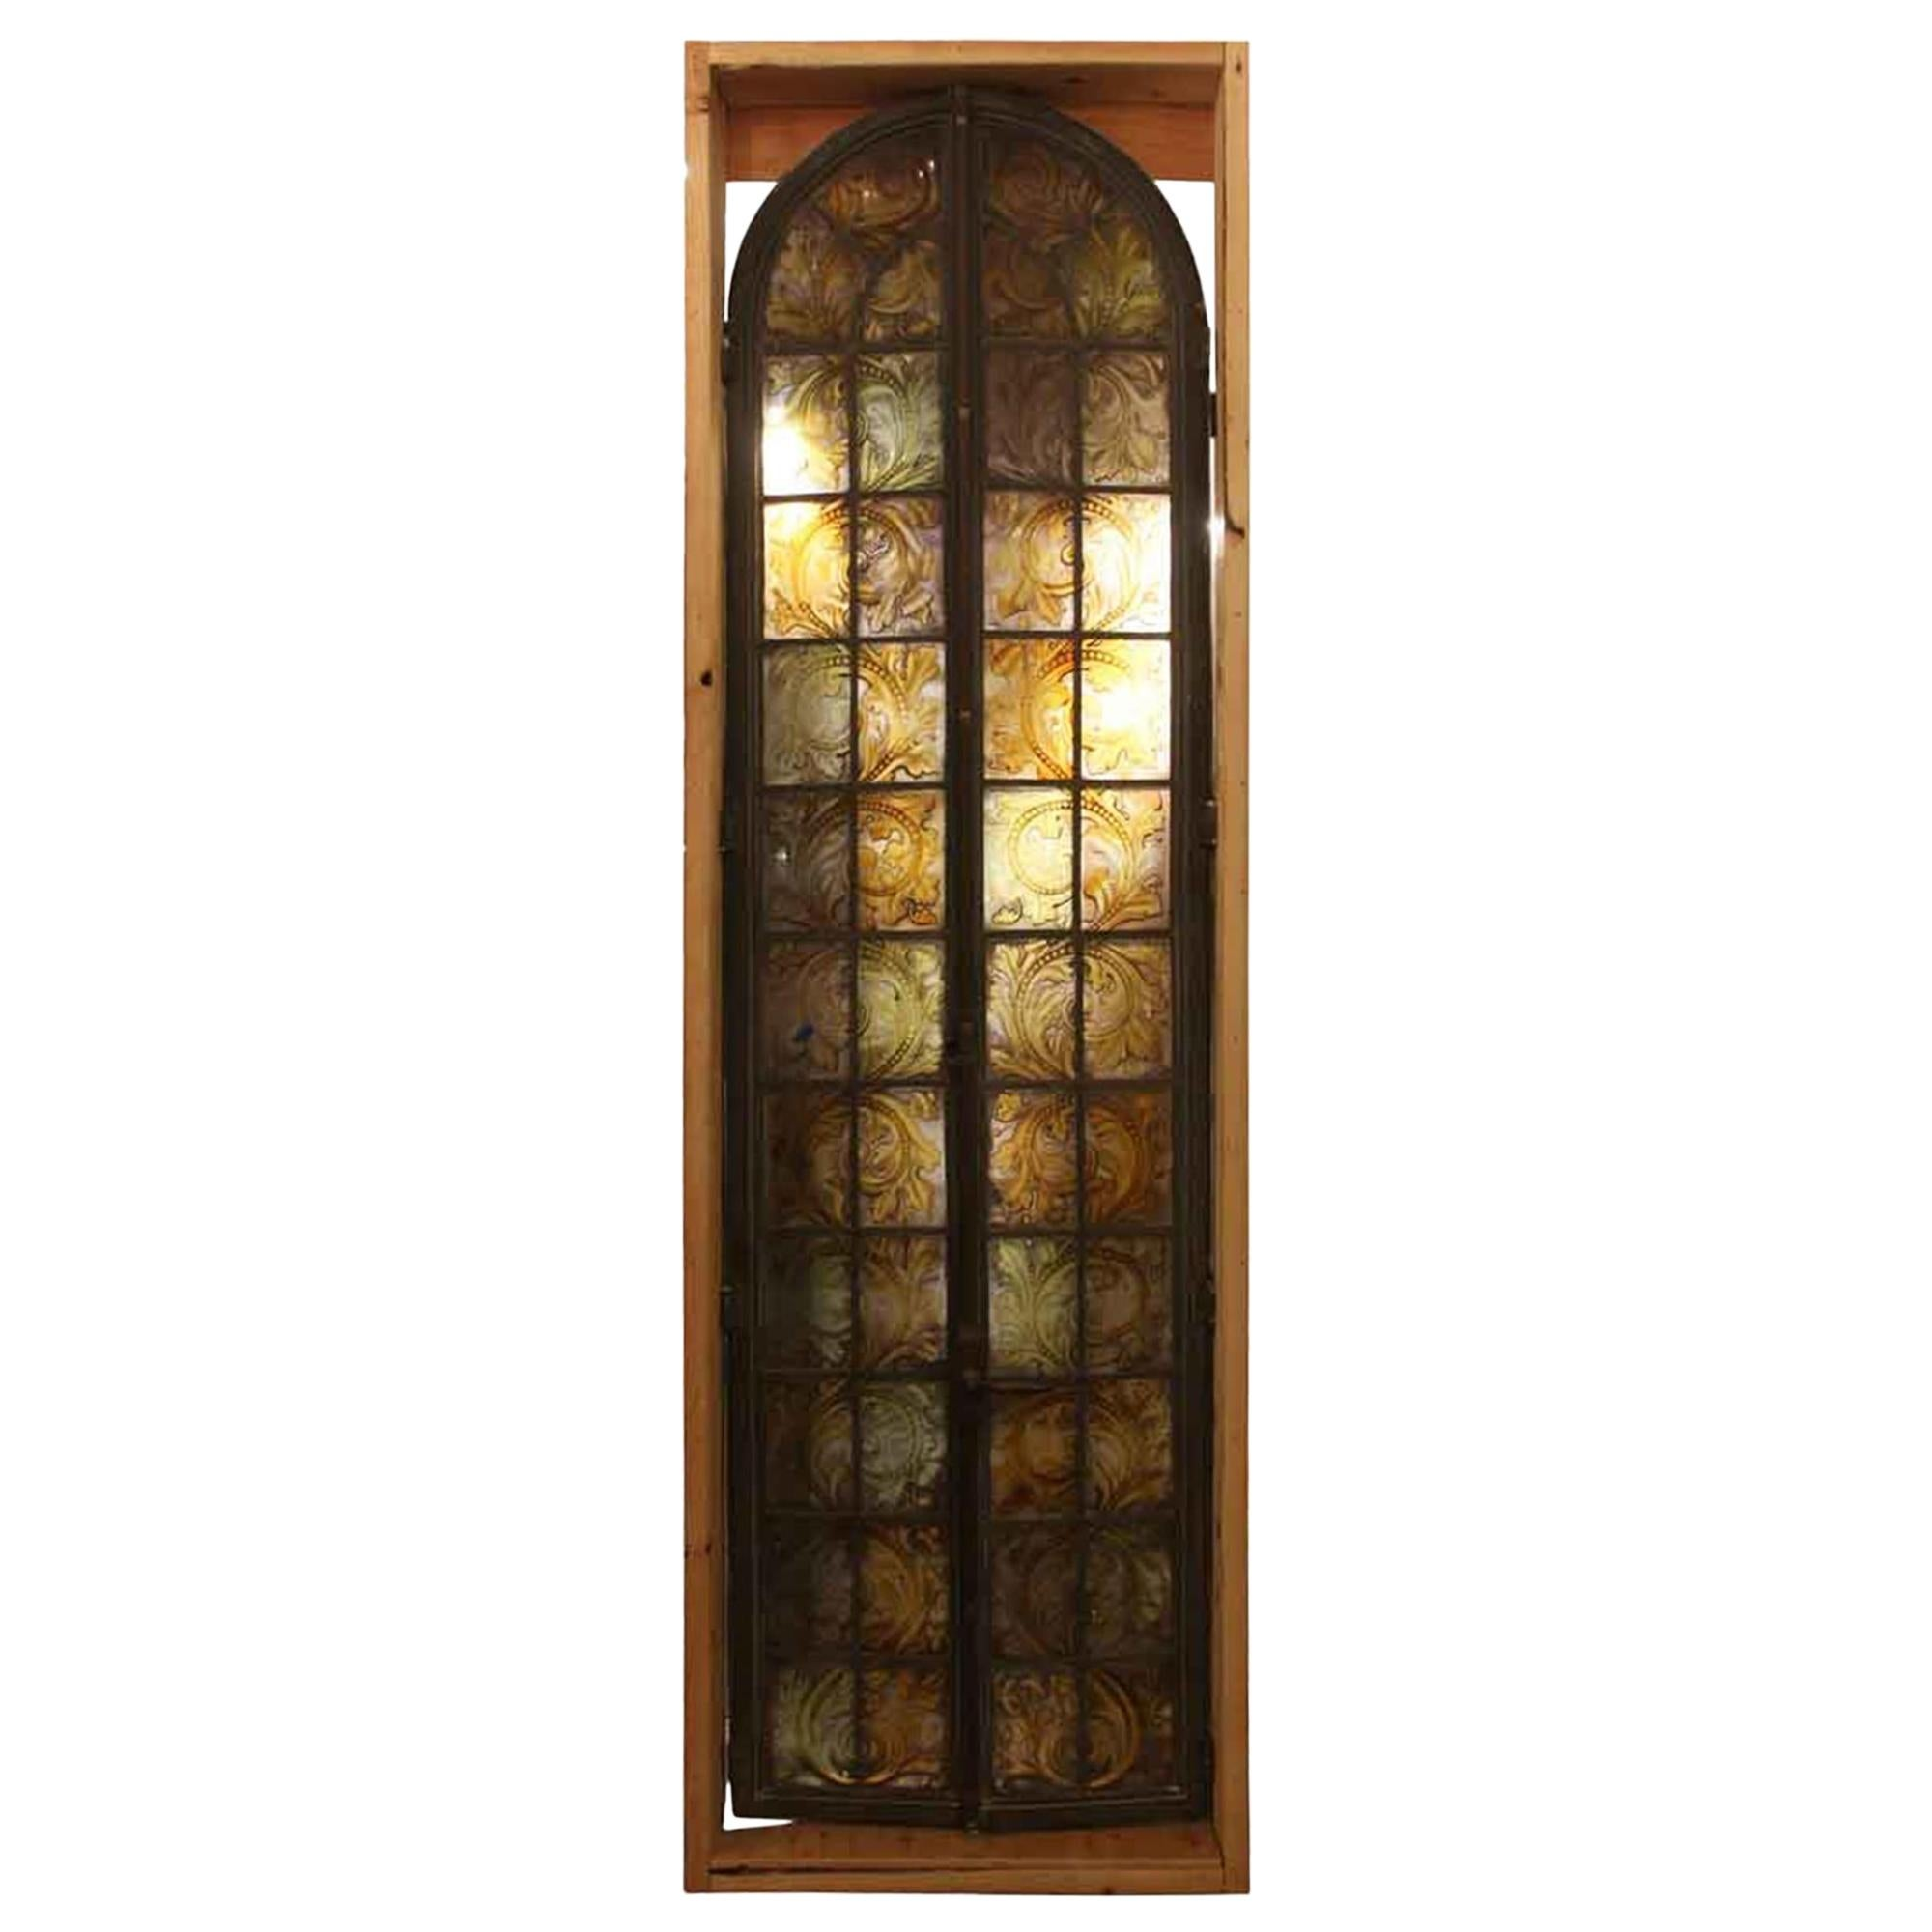 1900s Hand Painted Amber Arched Top Stained Glass Window in Bronze Frame